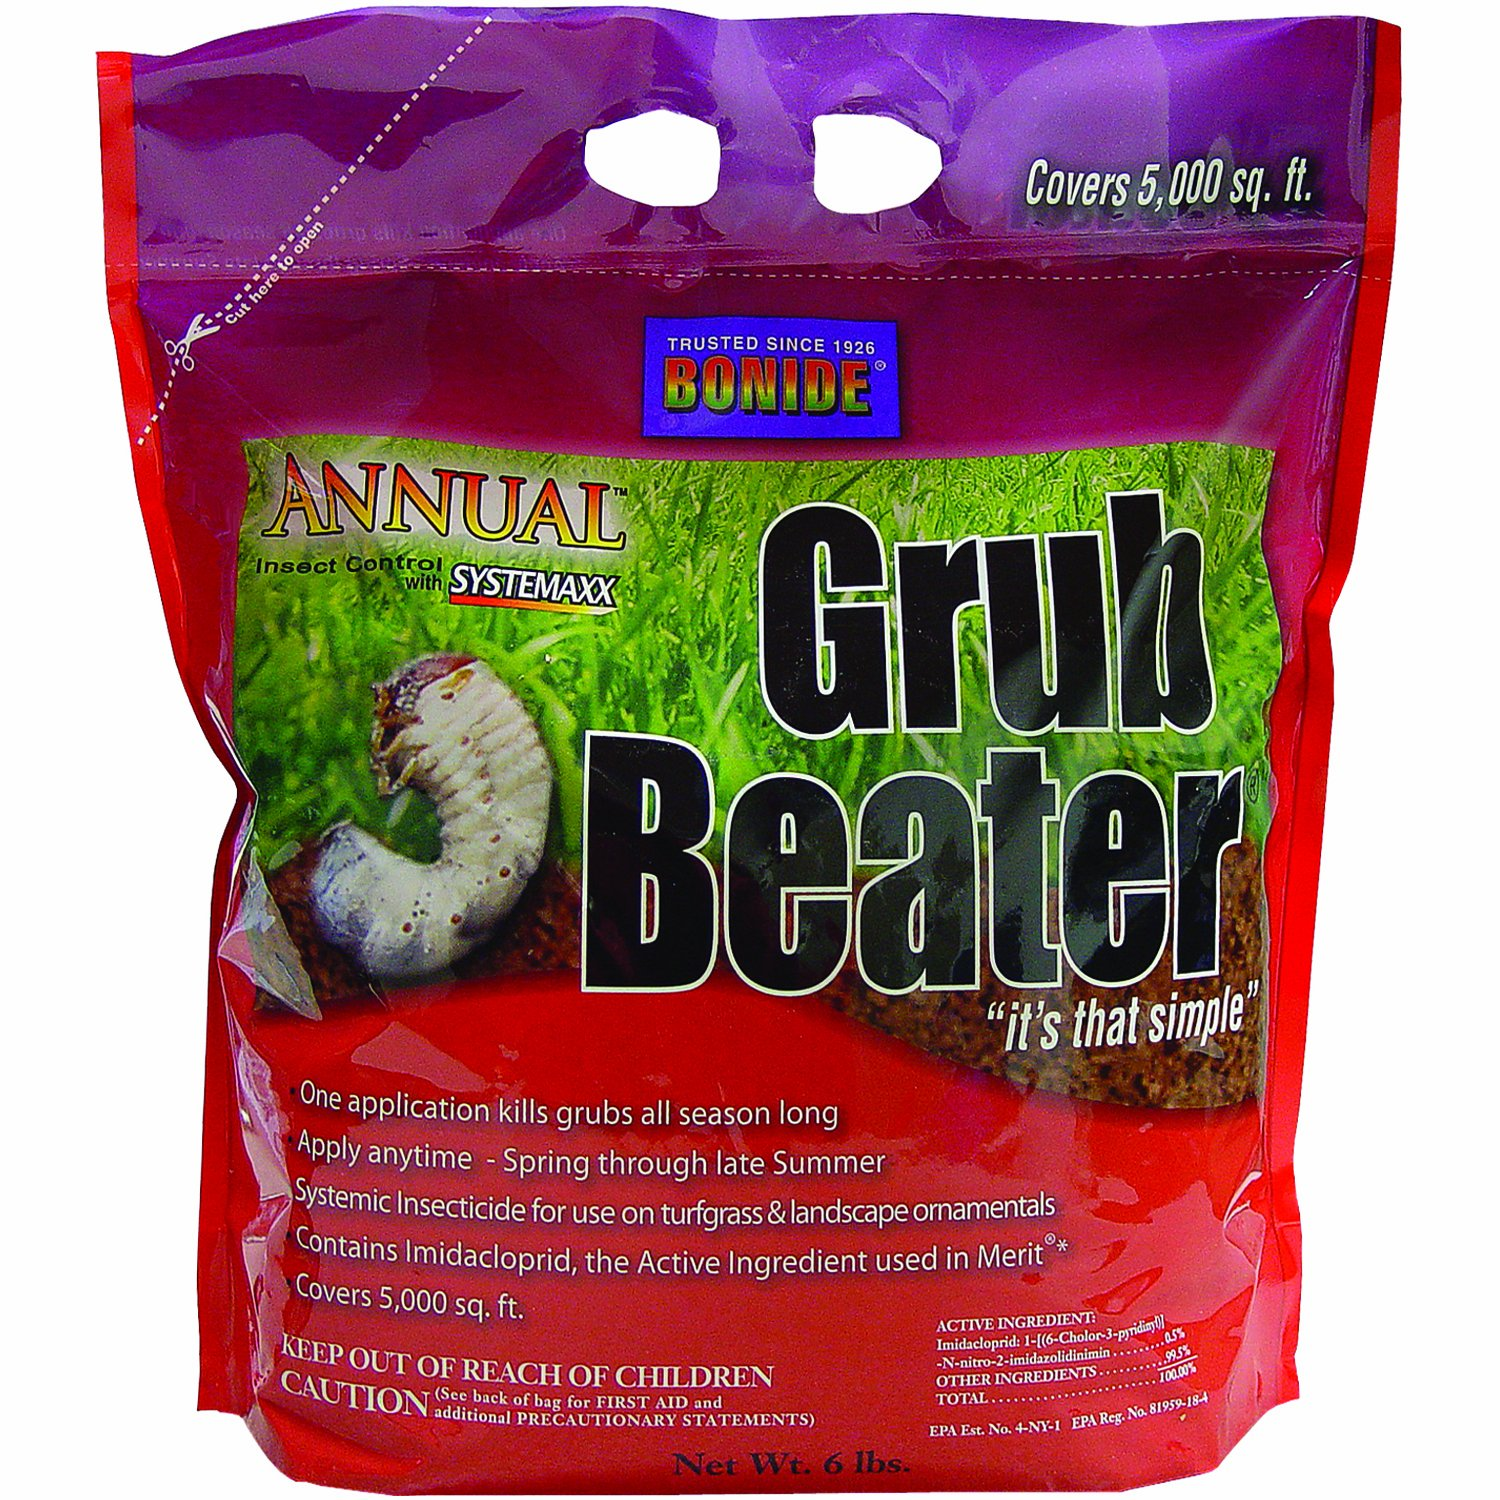 ANNUAL GRUB BEATER 5K BAG [Misc.] [Misc.] [Garden & Outdoors] Bonide 603